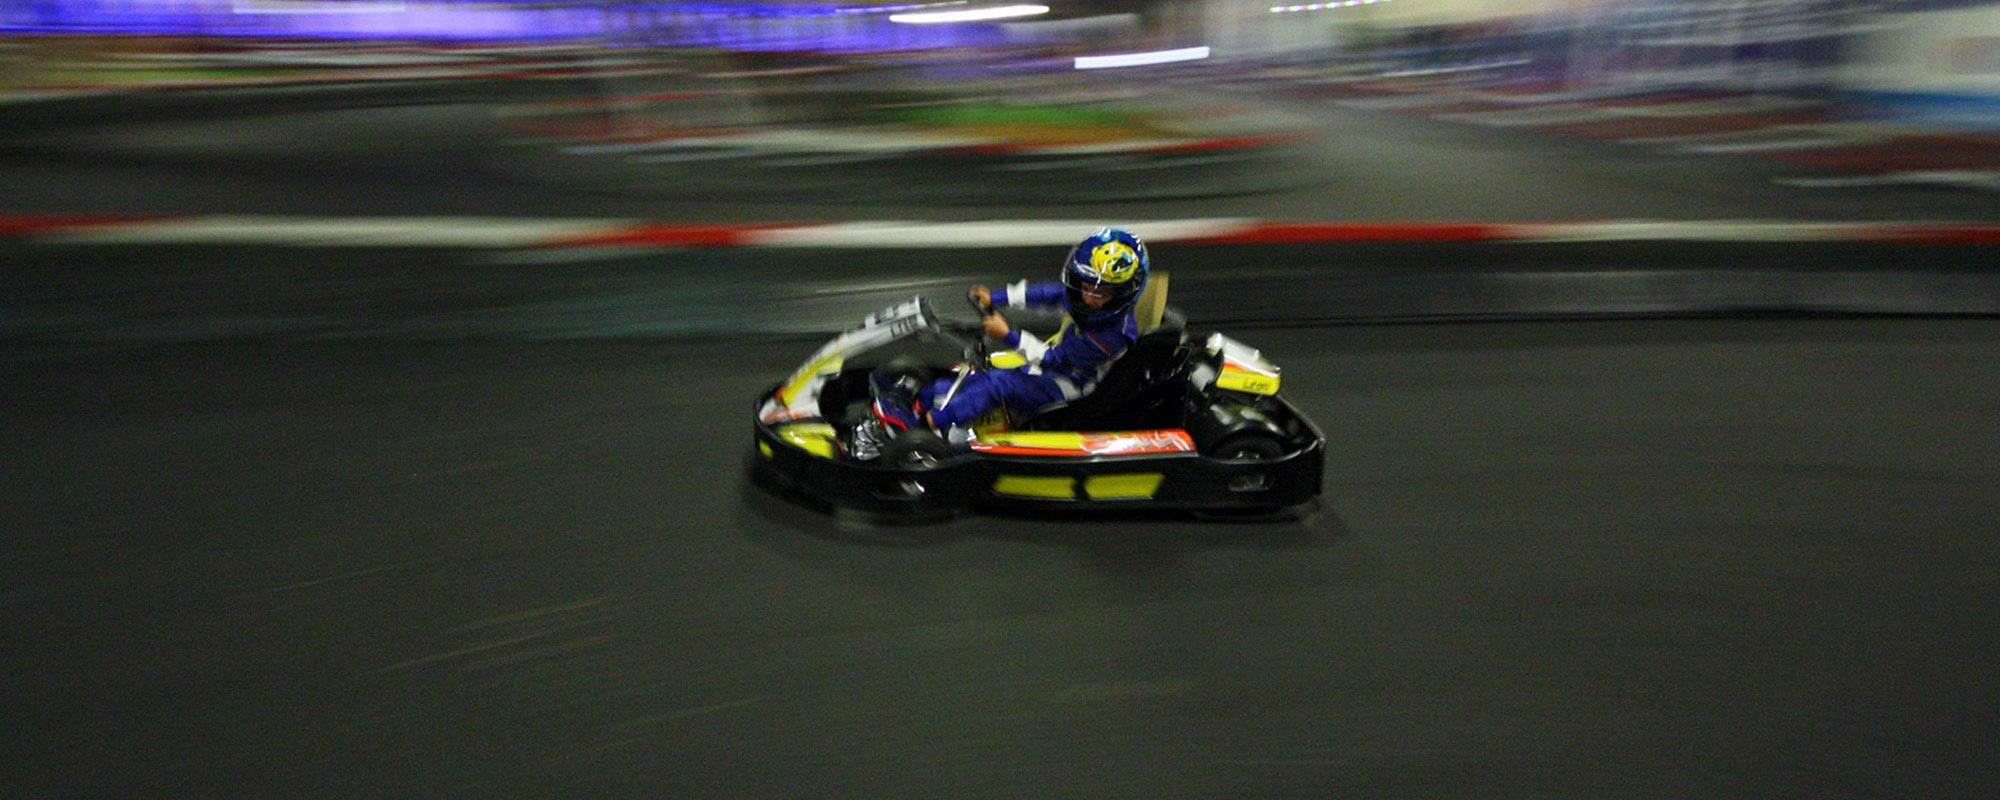 ebafkc-juniorkarting-2000x800-09